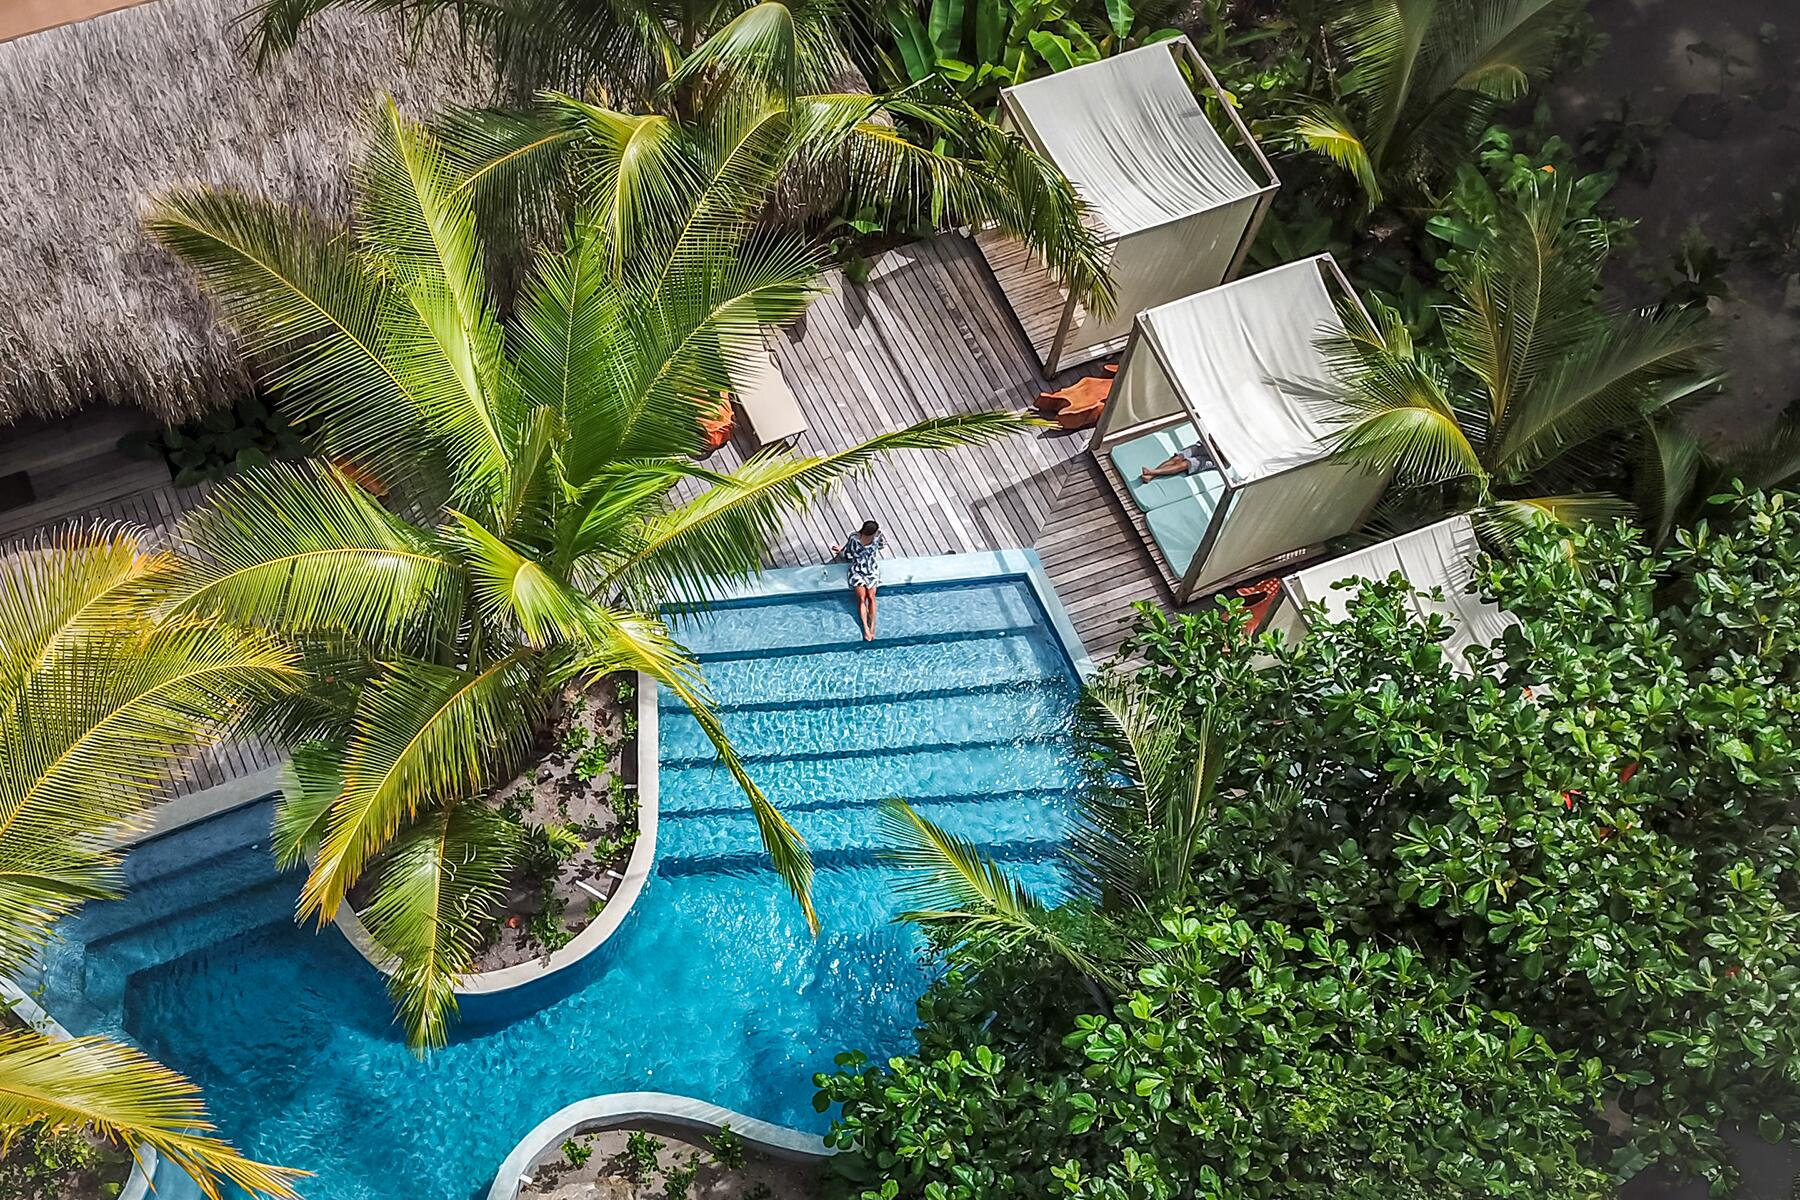 How To Do A Luxury Vacations In Panama